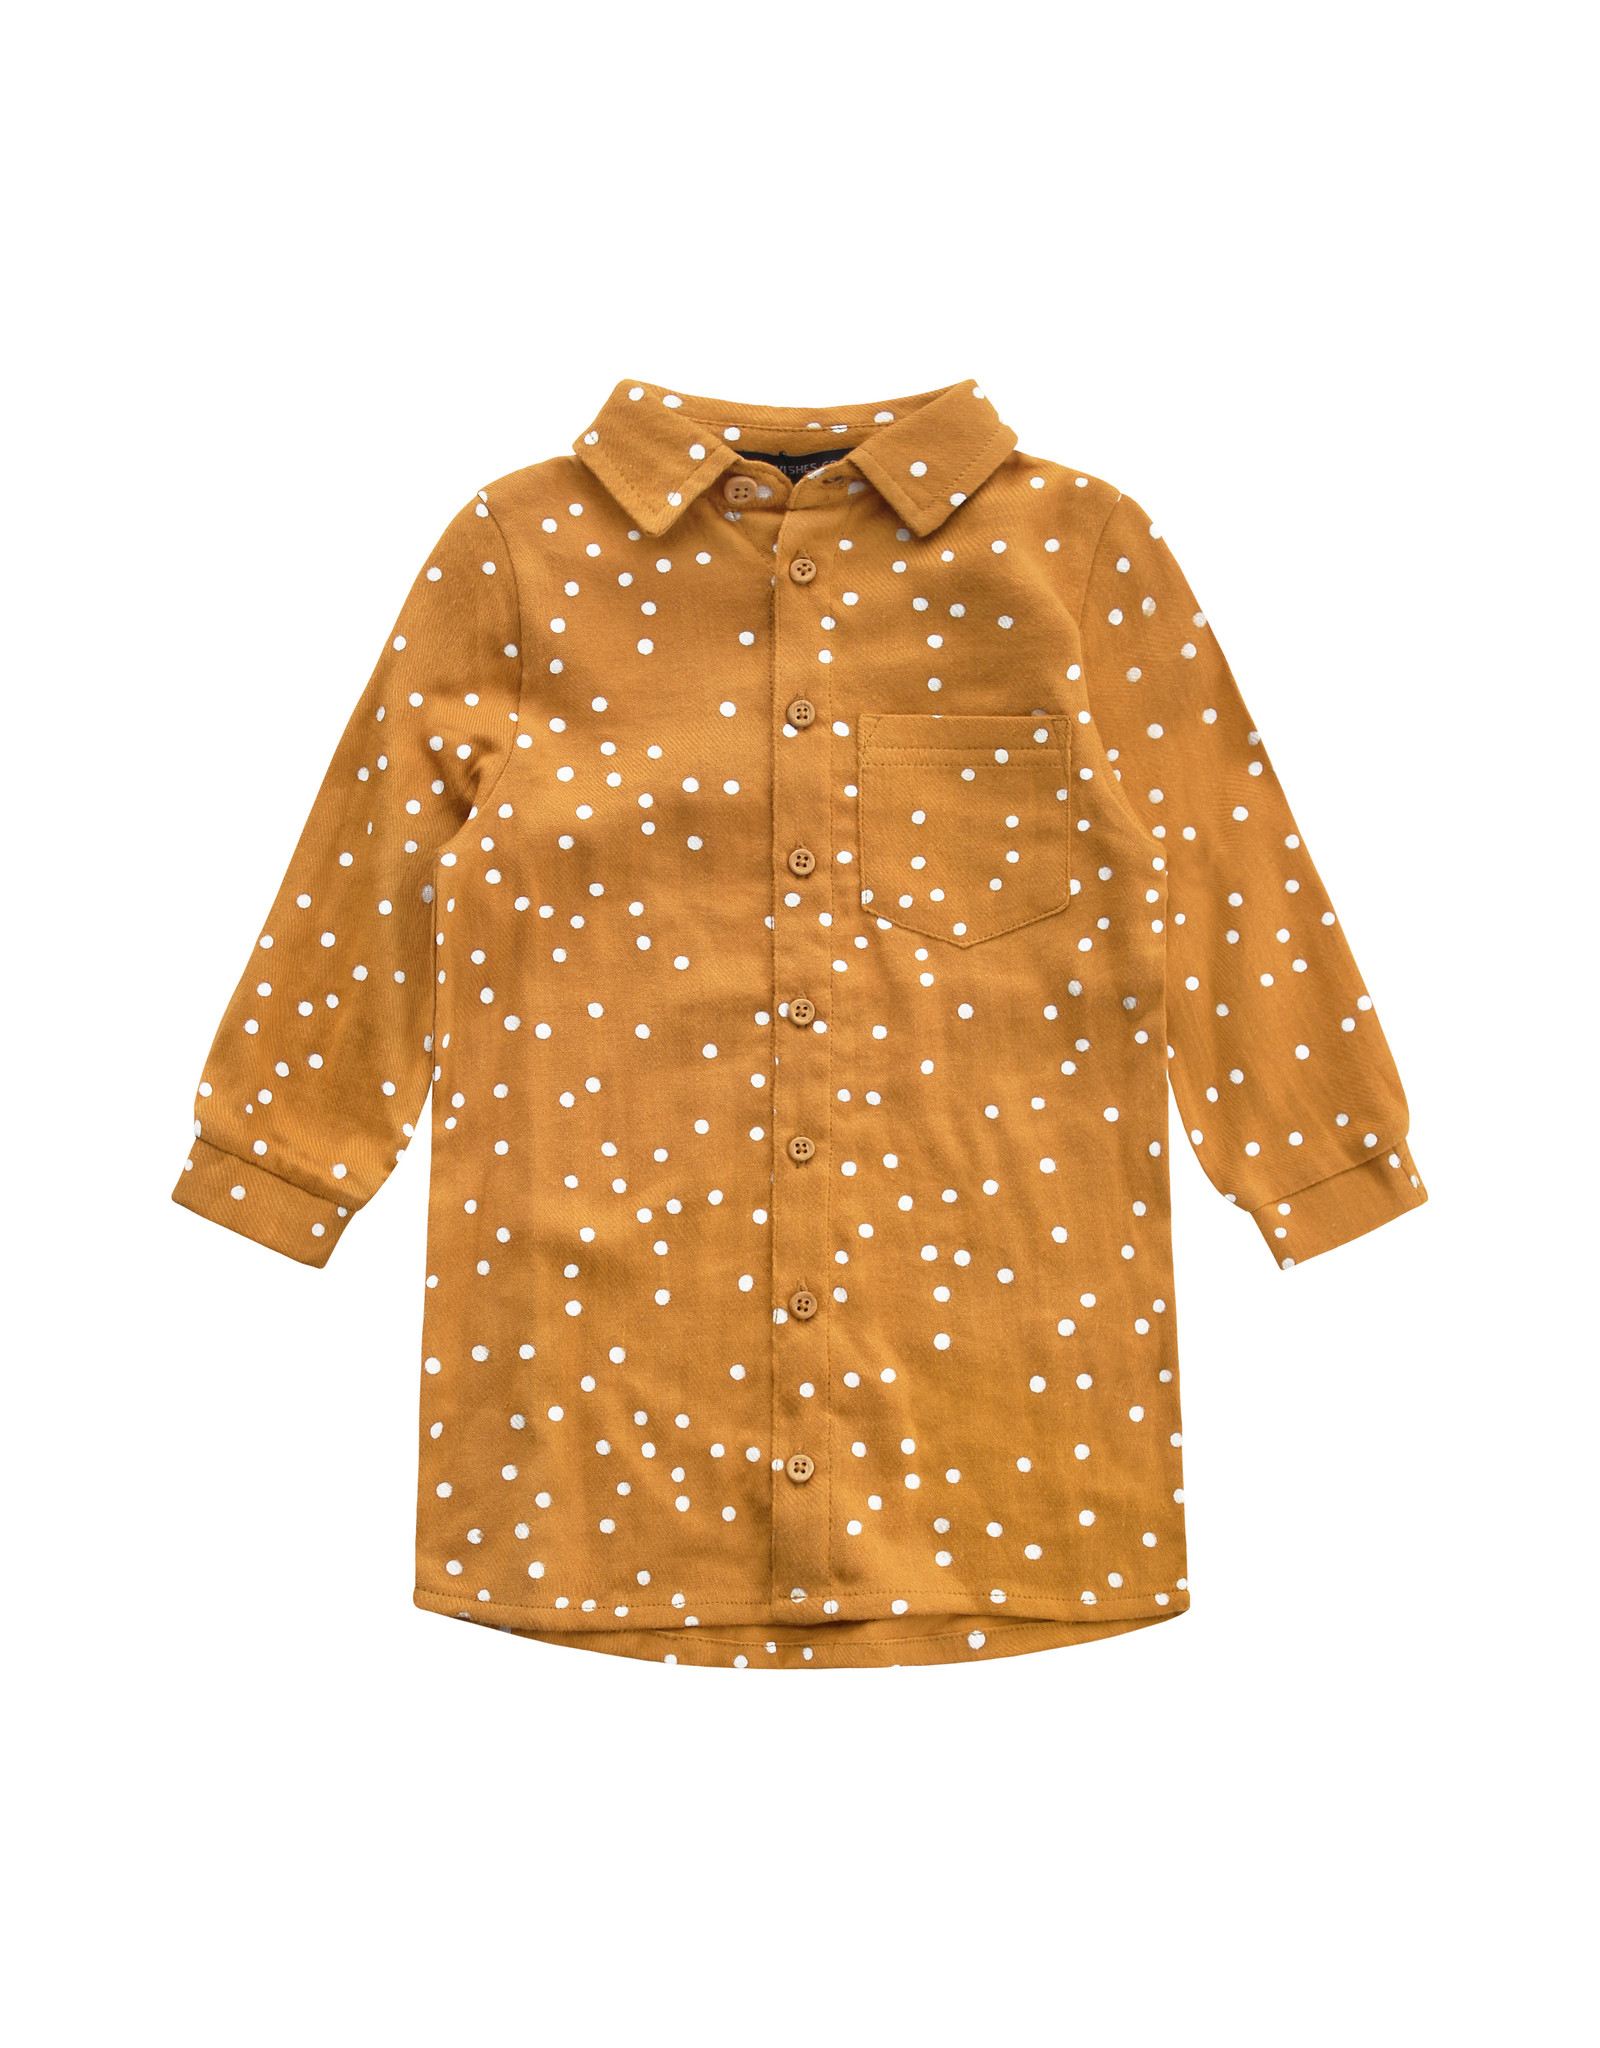 Your Wishes Confetti | Blouse Dress, Gold